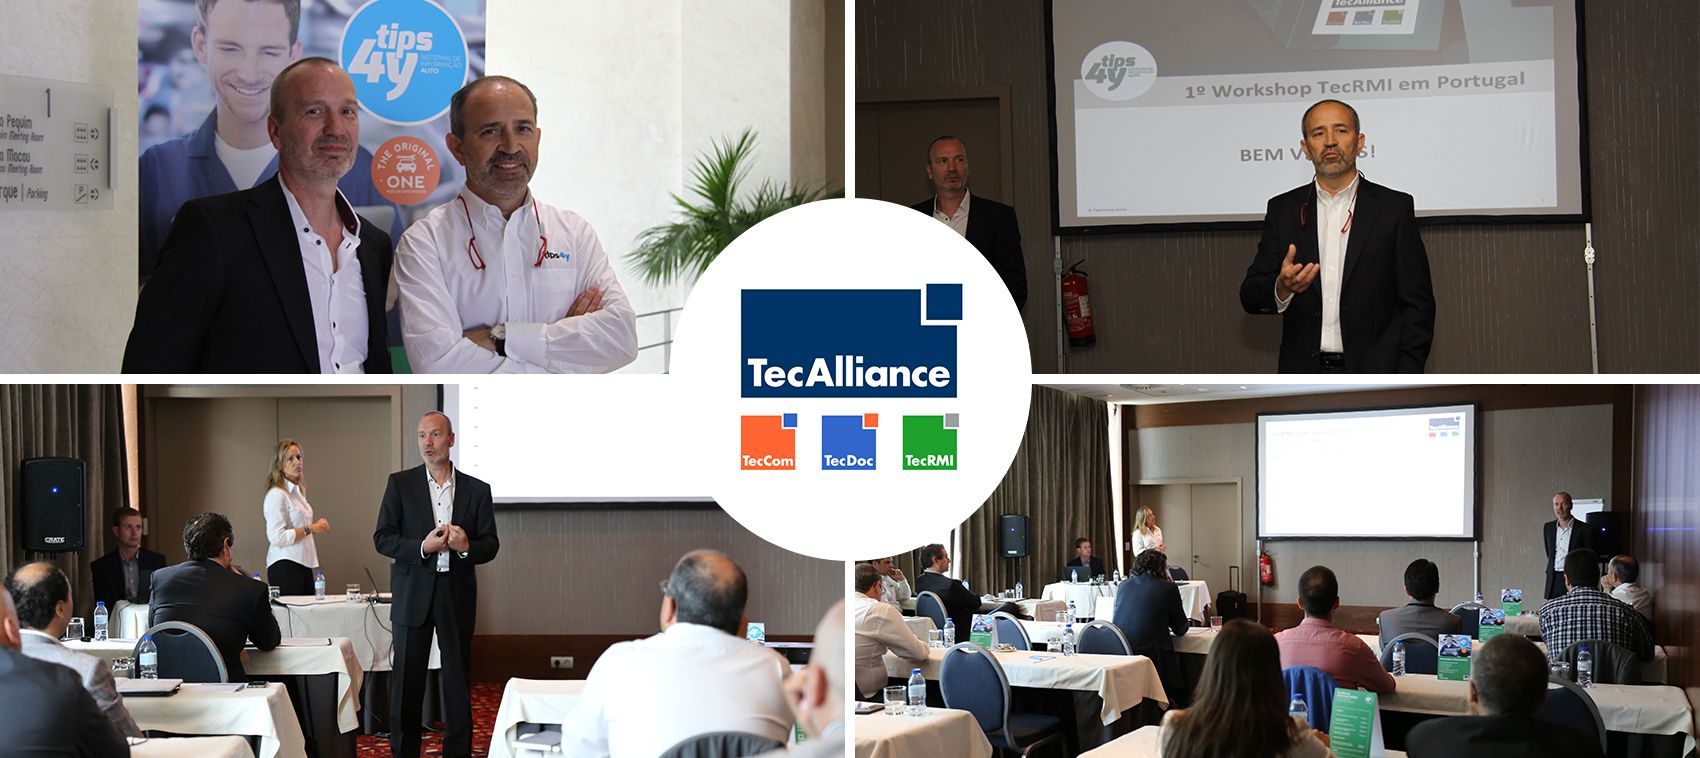 1º Workshop TecRMI em Portugal